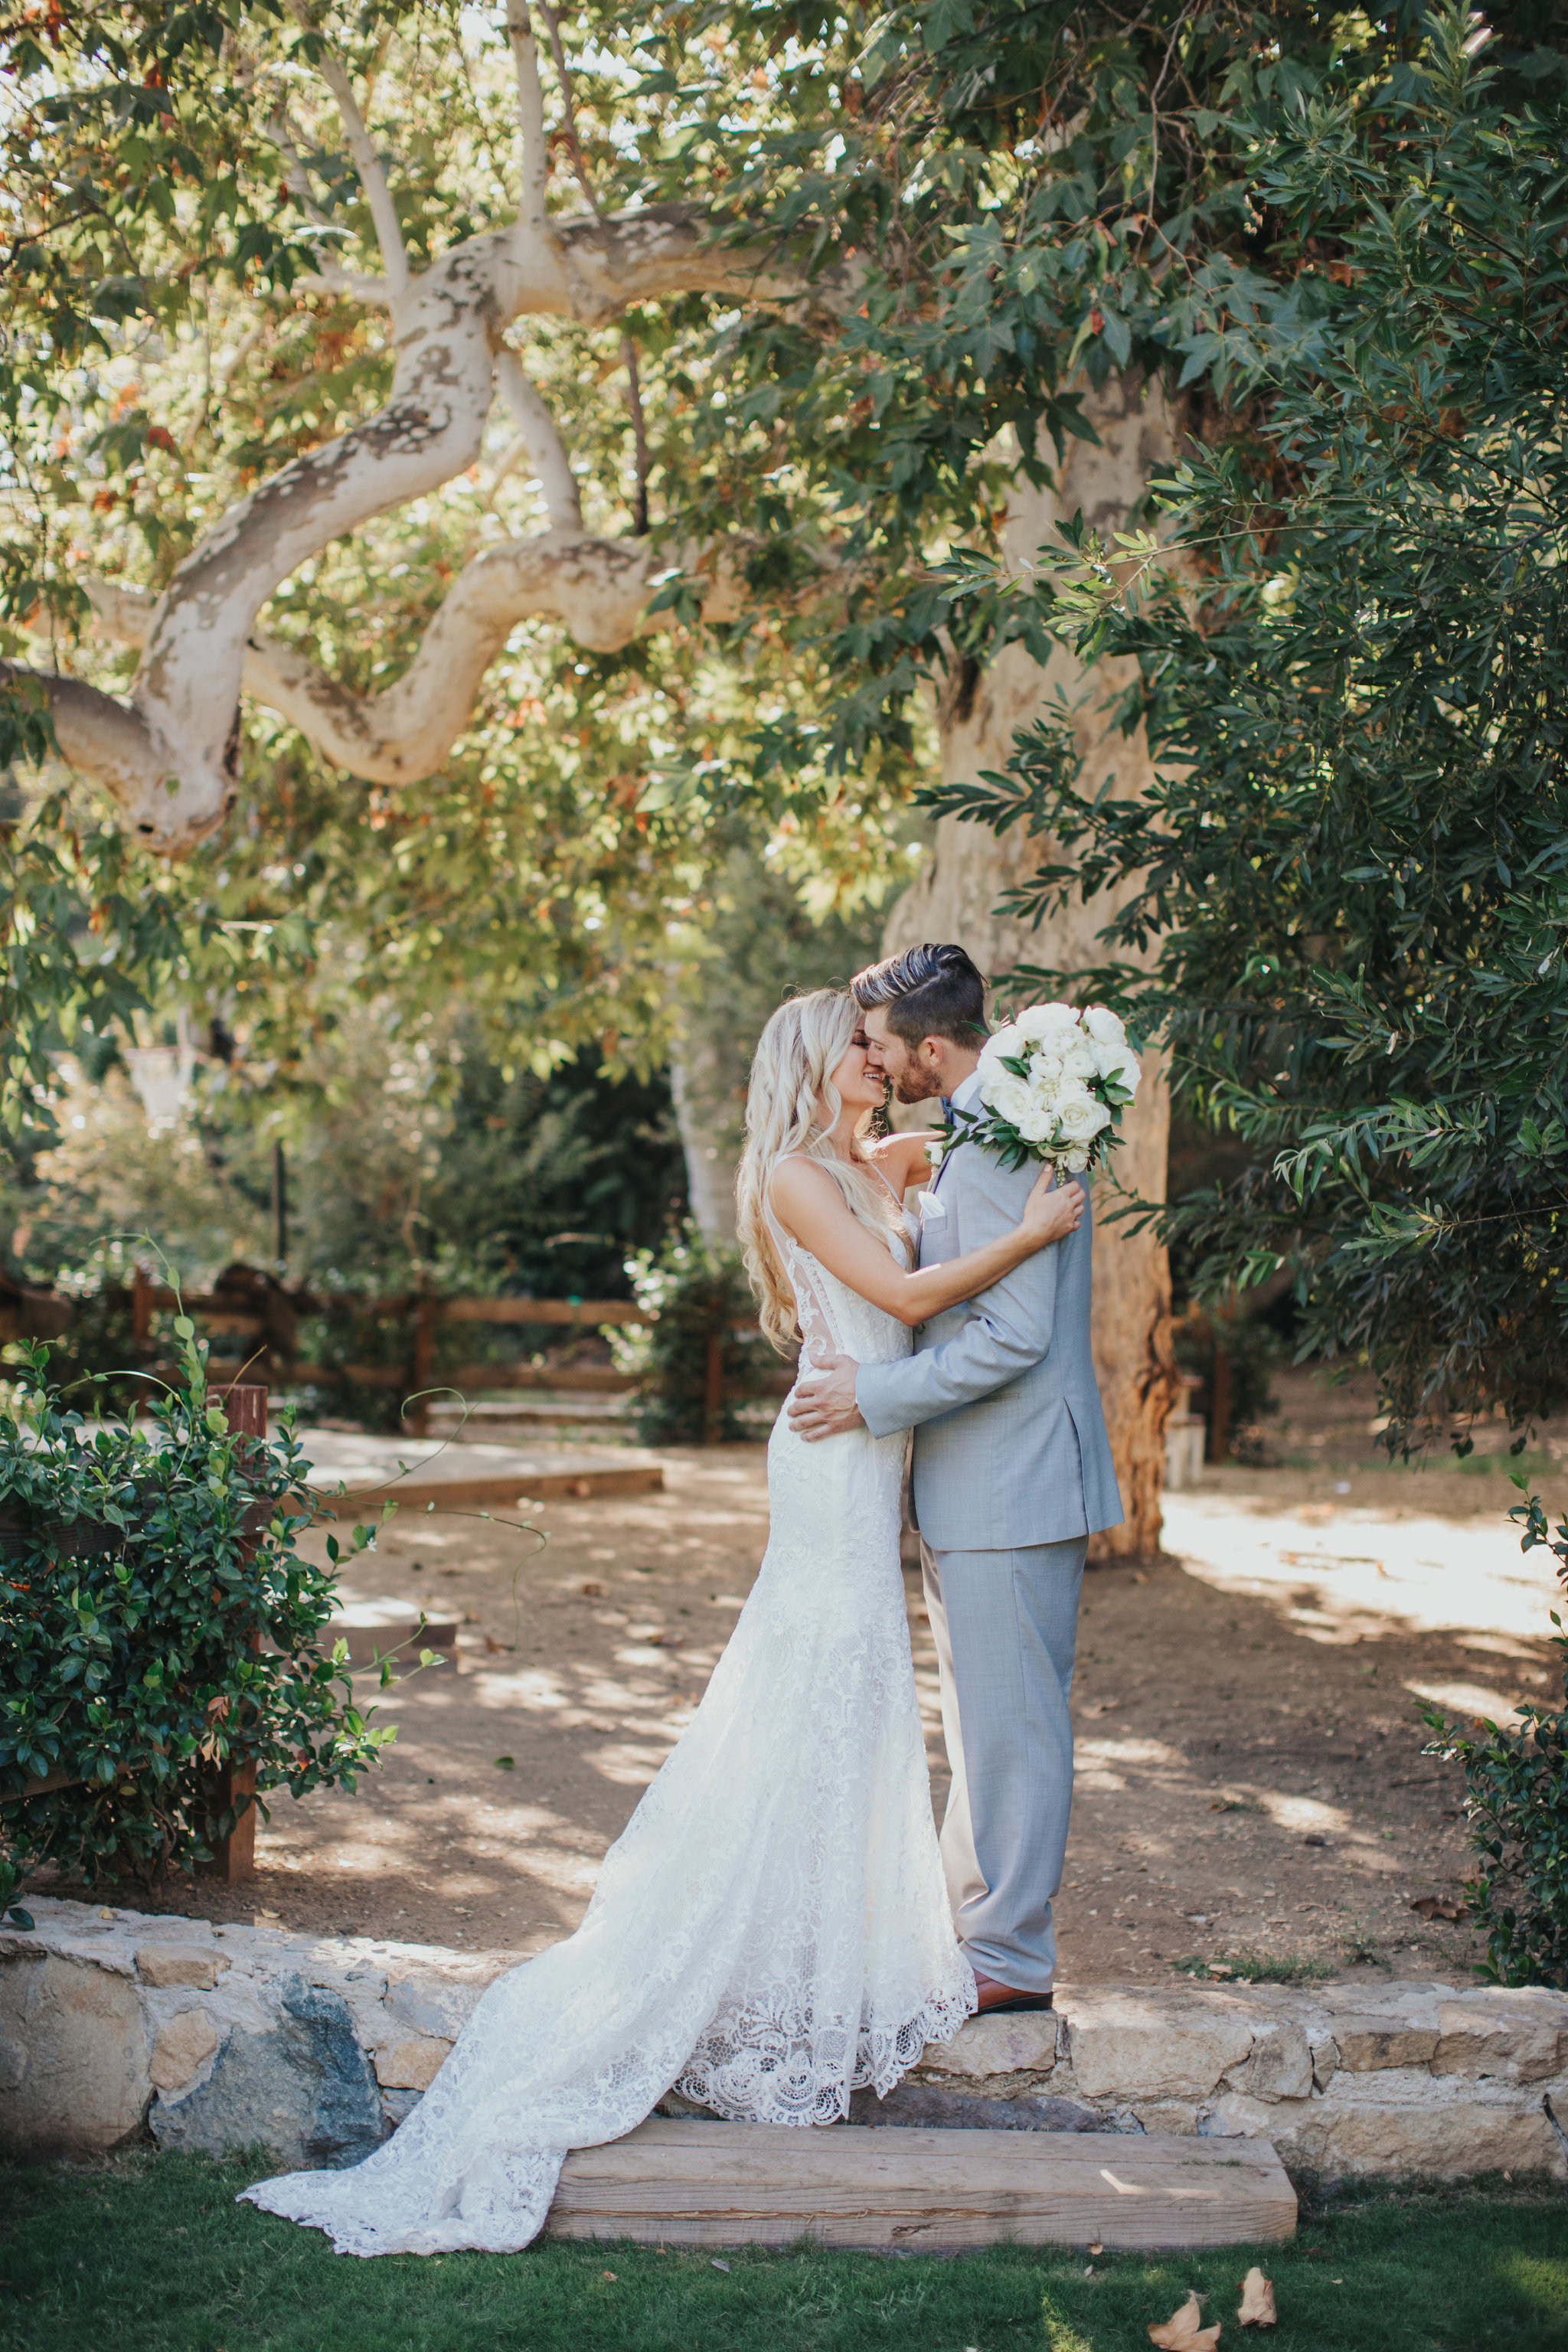 Wedding Love | Calamigos Ranch